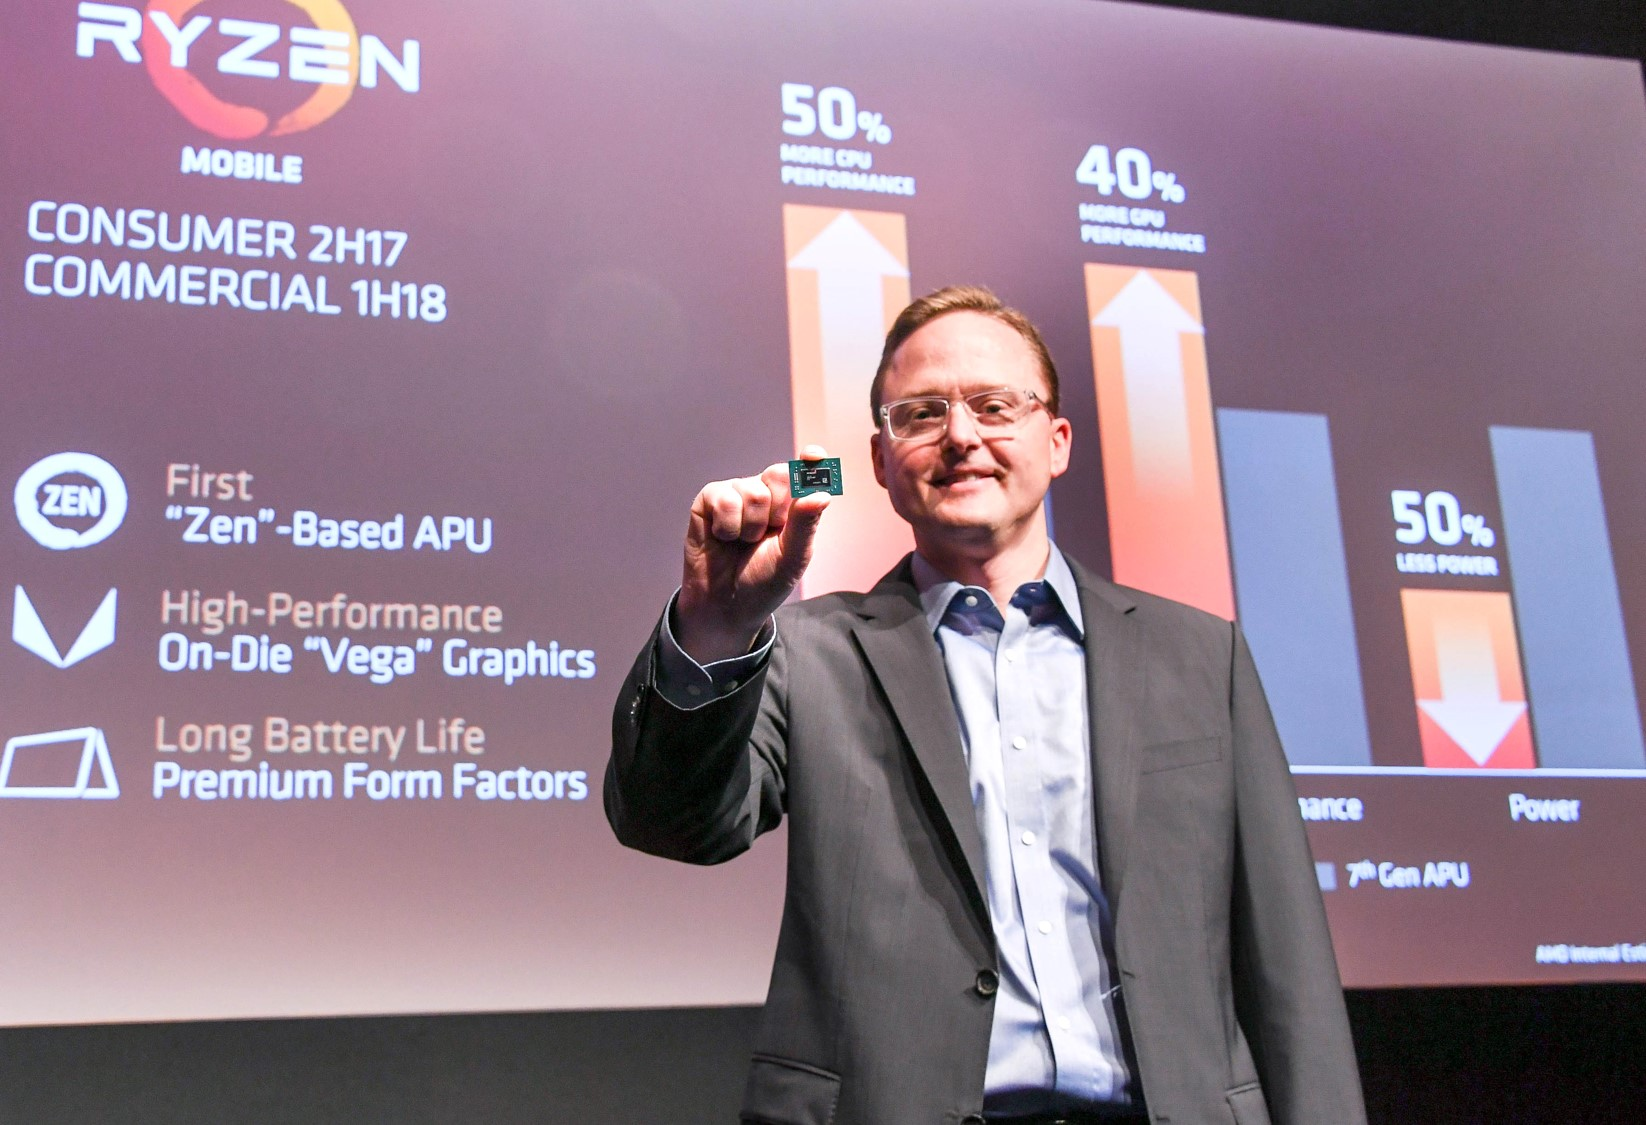 3_Jim Anderson, senior vice president and general manager, AMD Compute and Graphics business group, demonstrated publicly for the first time a Ryzen mobile APU